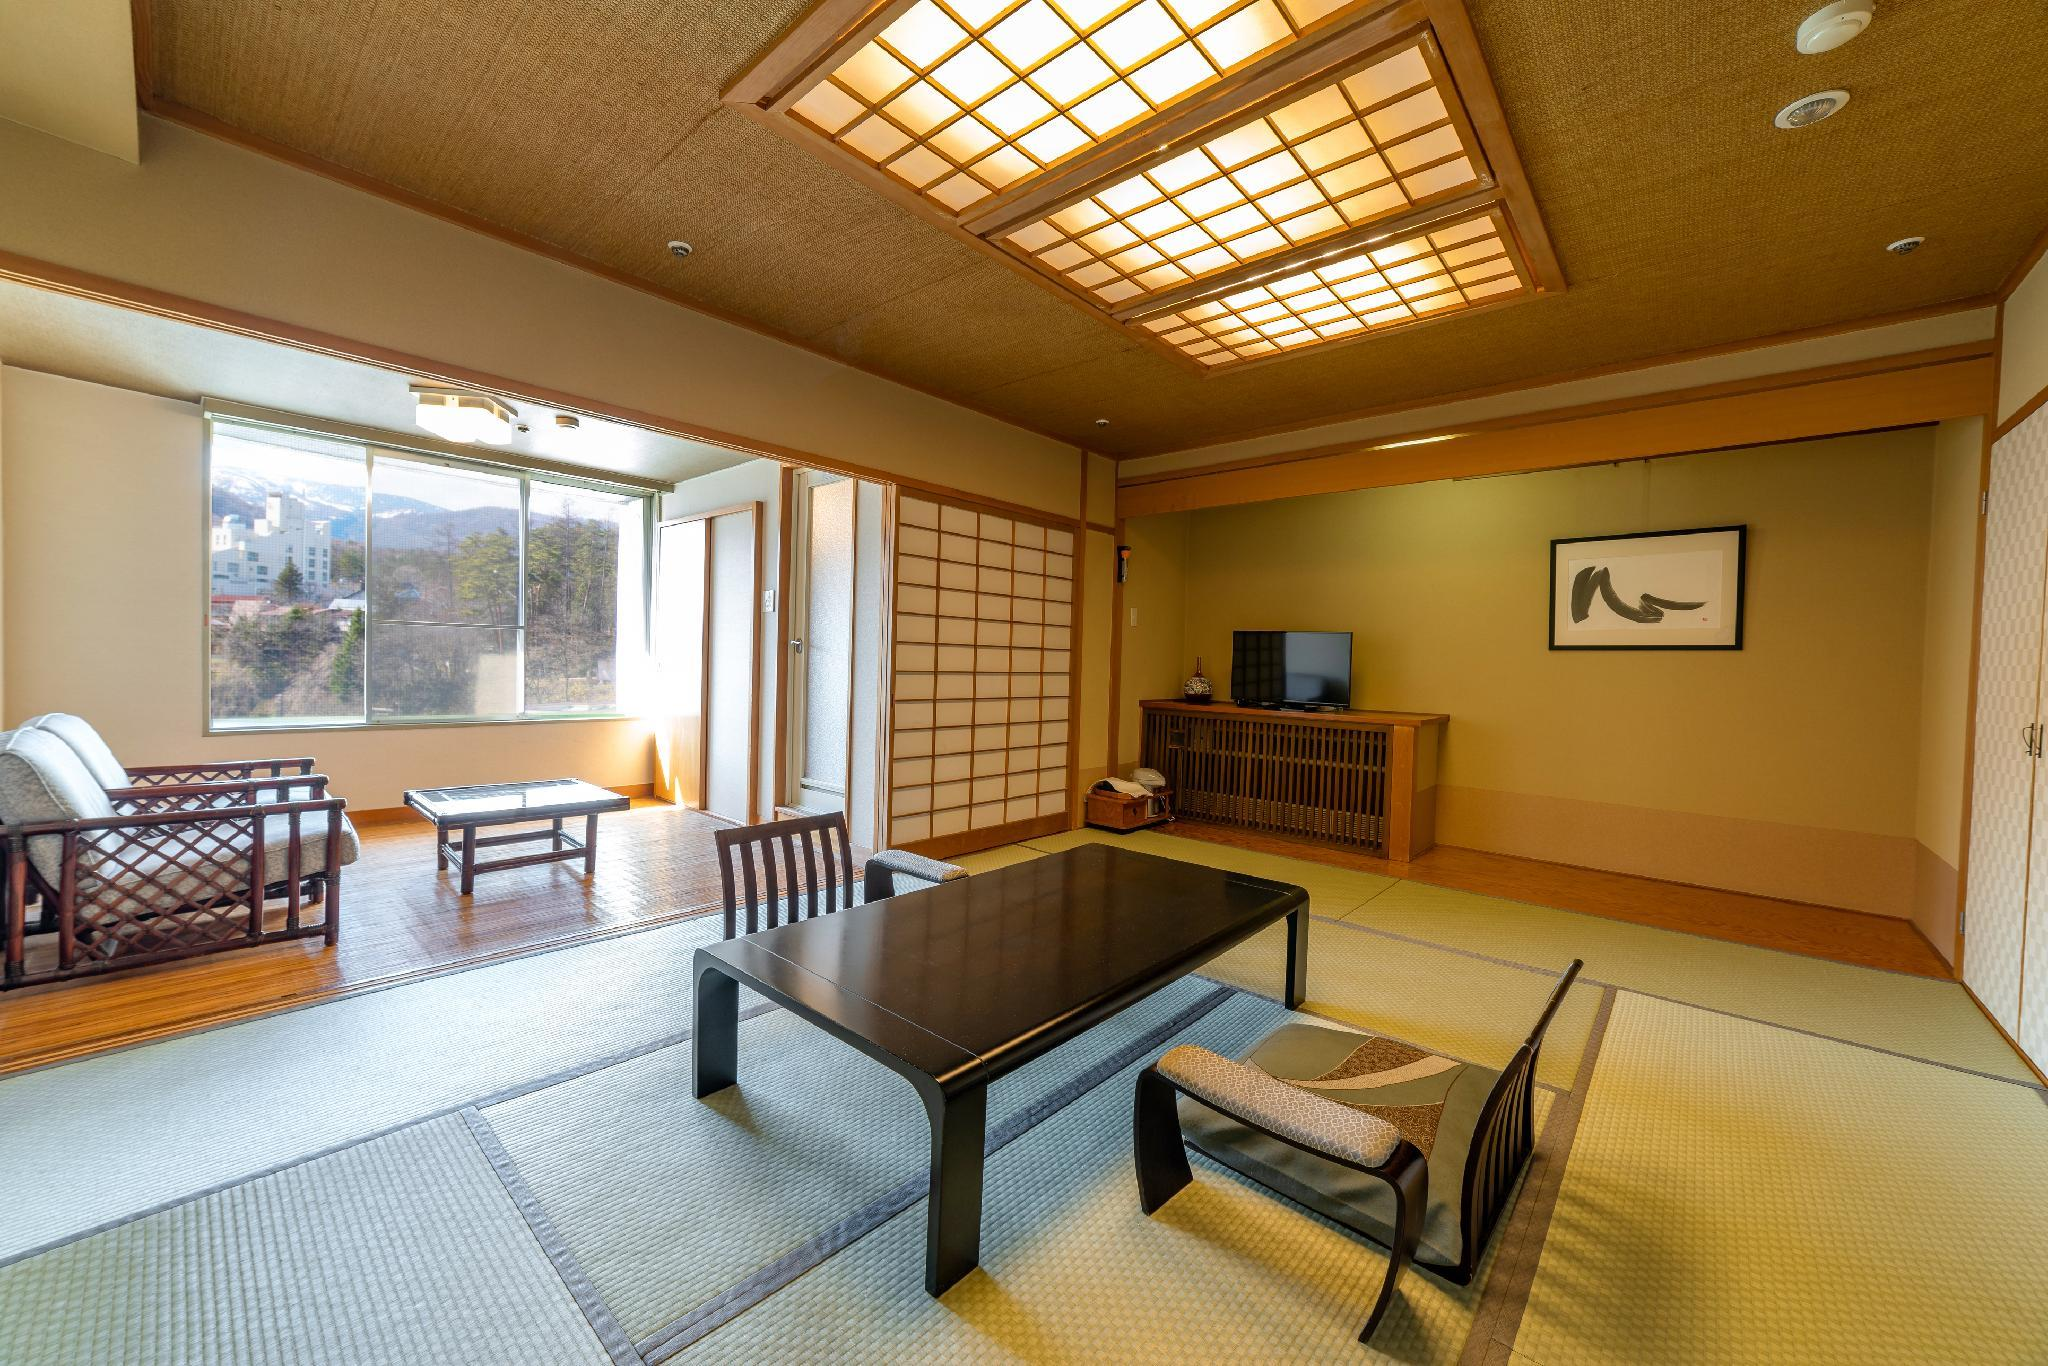 Hot Spring Field View Japanese Style Room for 5 People with 10 Tatami